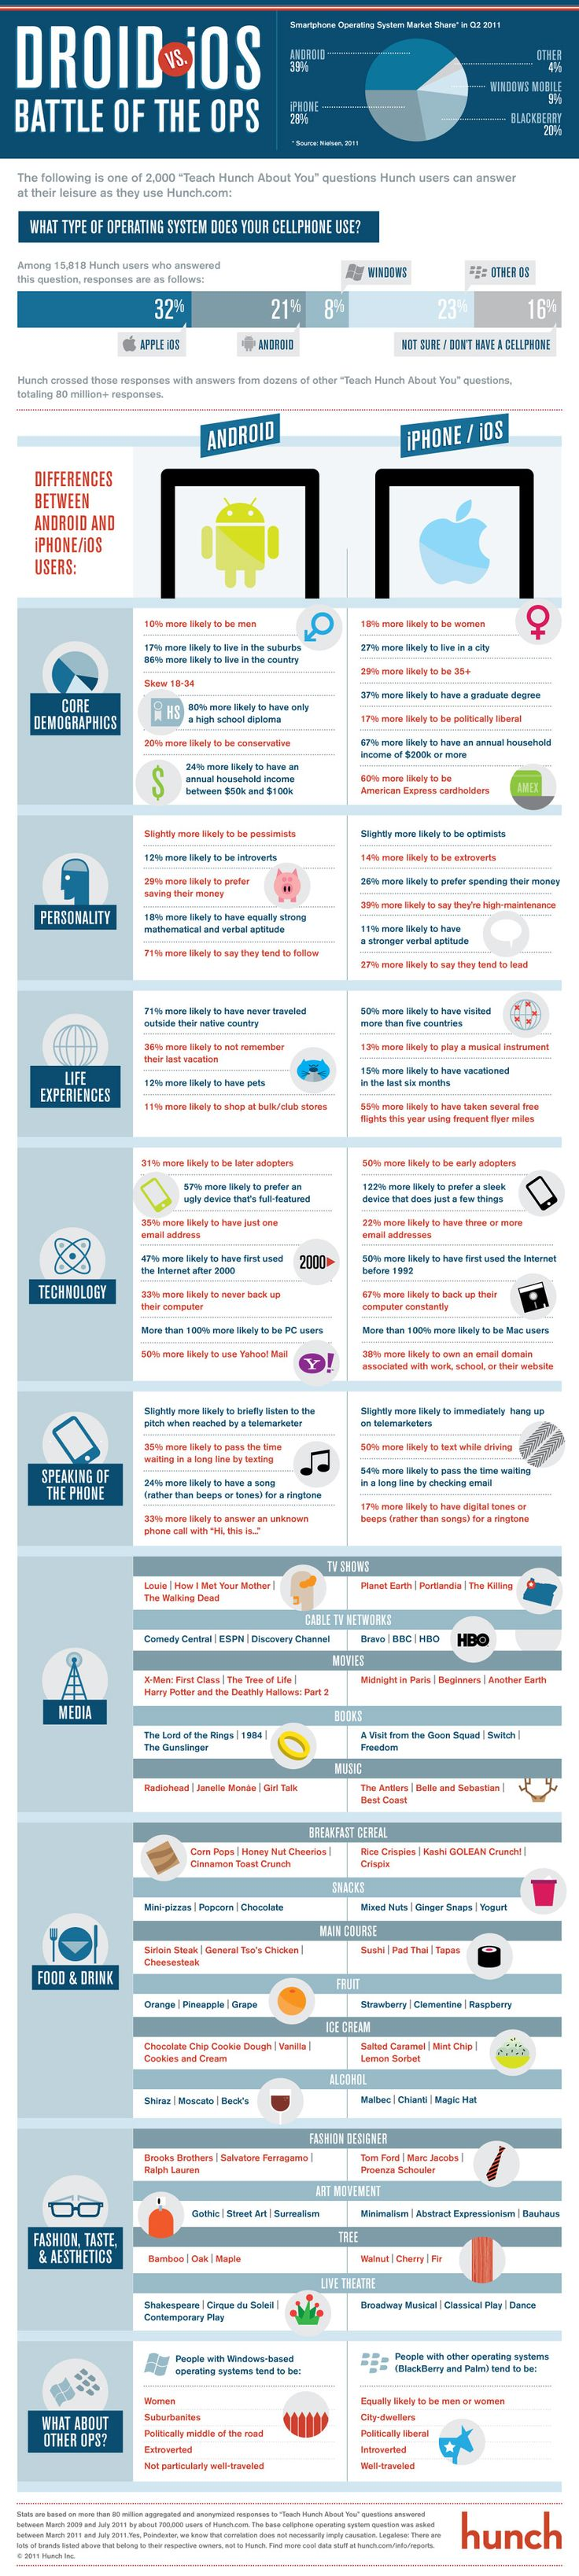 Hunch Infographic: Android vs. iPhone — Battle of the Mobile Operating Systems - Column Five Media